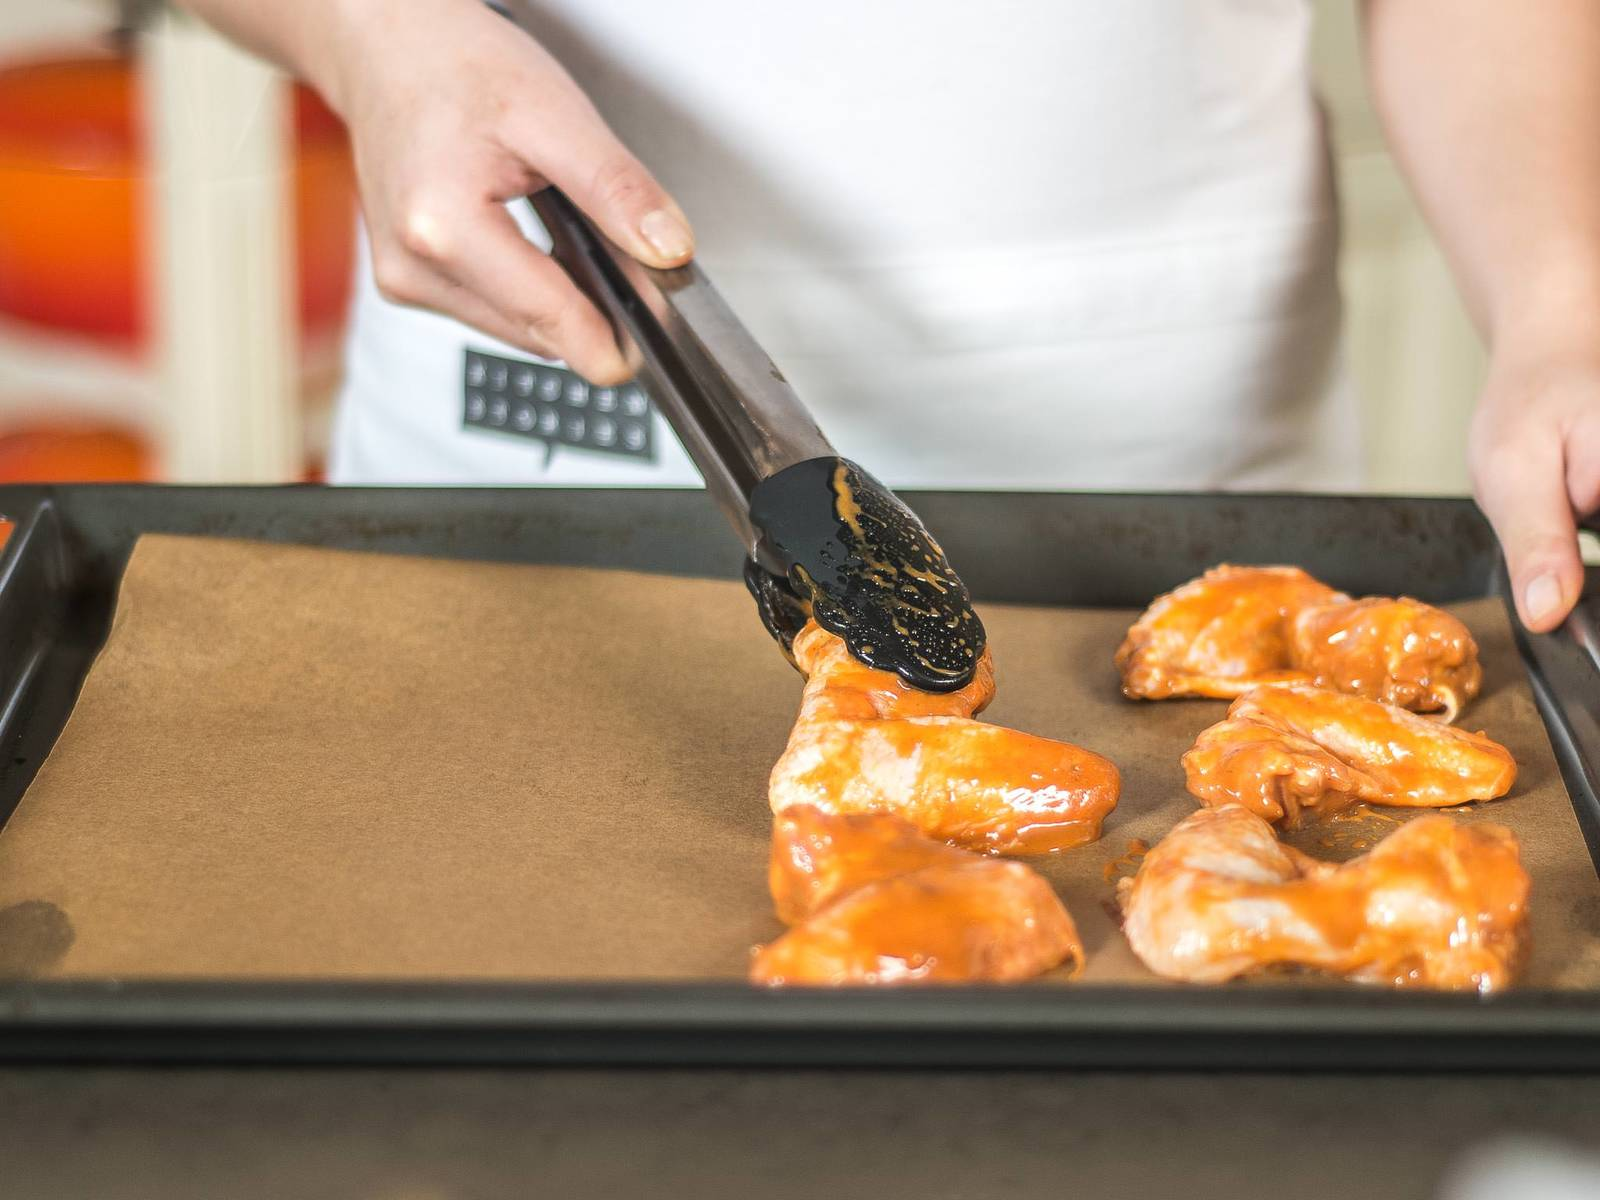 Preheat the oven to 180°C/355°F. Now, take the marinated chicken wings, allowing any surplus marinade to drip off, and put on a baking rack or a baking sheet lined with parchment paper.